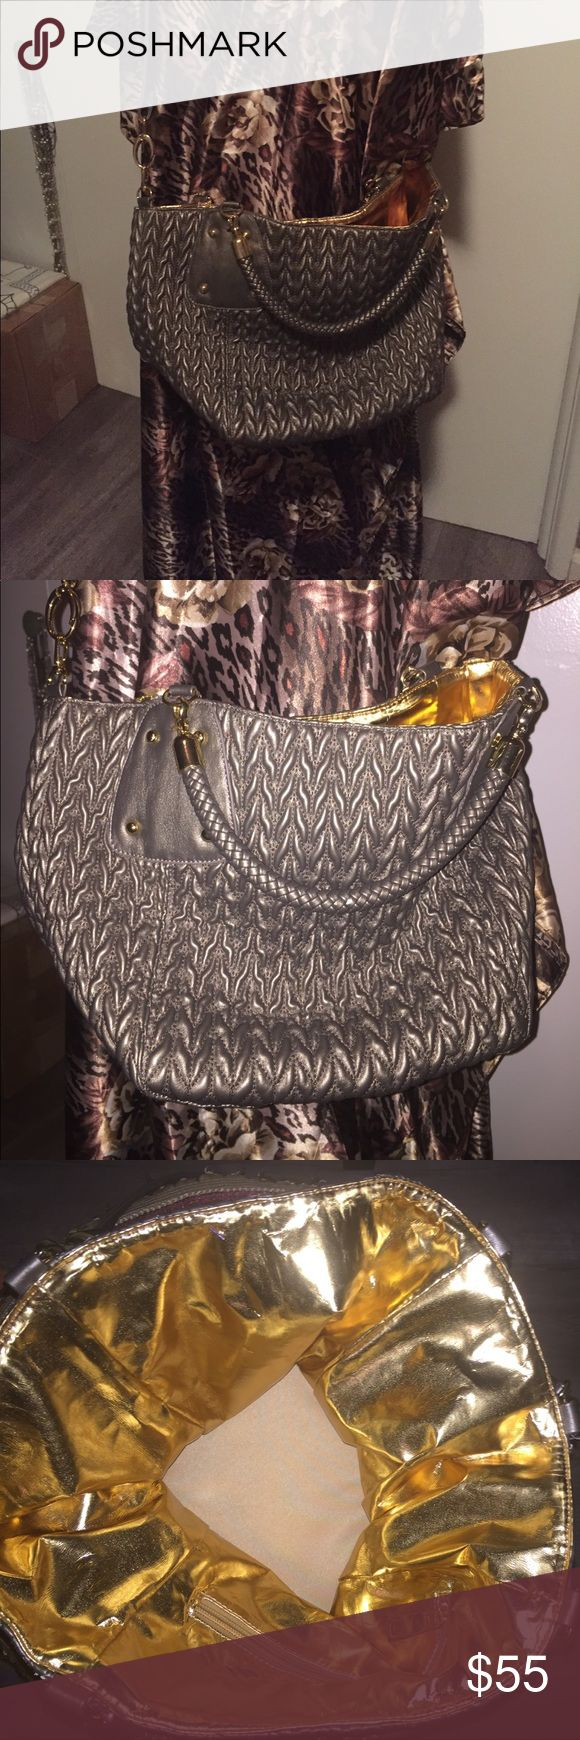 Big Buddha Bag! NWOT New without tags! Never used ! This Big Buddha bag is gorgeous! Great for travel! Textured gray exterior- Gold interior. Handles or shoulder strap for cross body! Perfect condition. Big Buddha Bags Totes